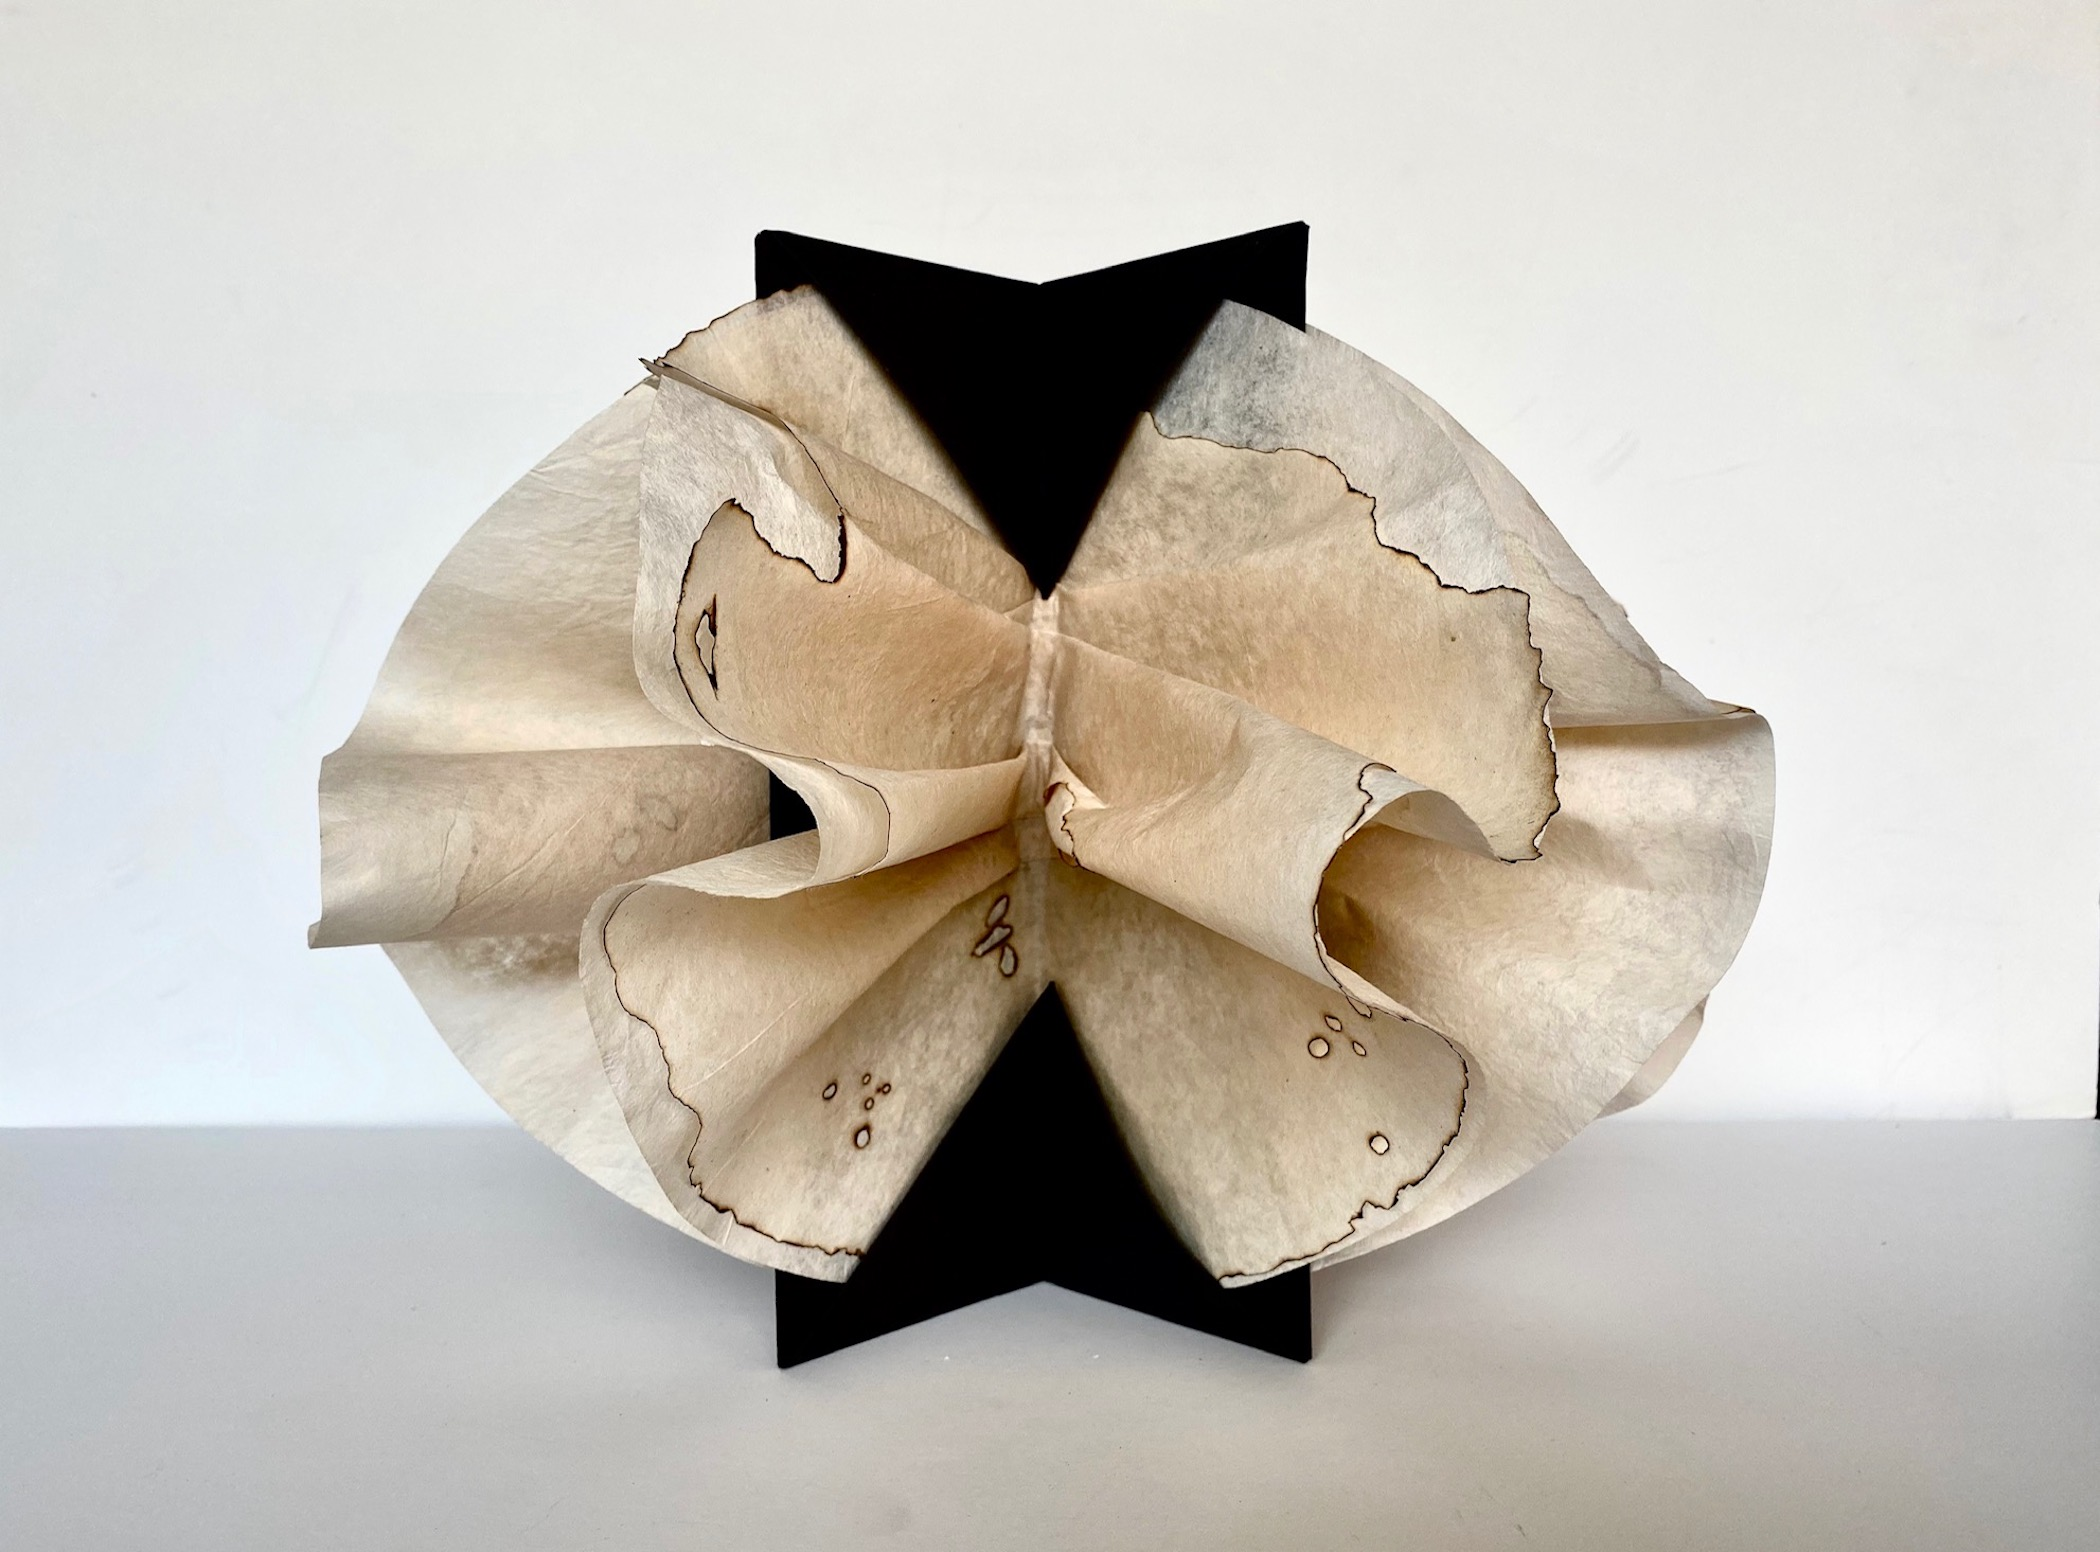 """Anna Mavromatis, """"Scorching August Affair (as seen by a woman)"""", 2019, paper sculpture: tea-toned industrial coffee filters with charred markings draped and held by a concertina folded center, 10 x 14 x 14"""""""